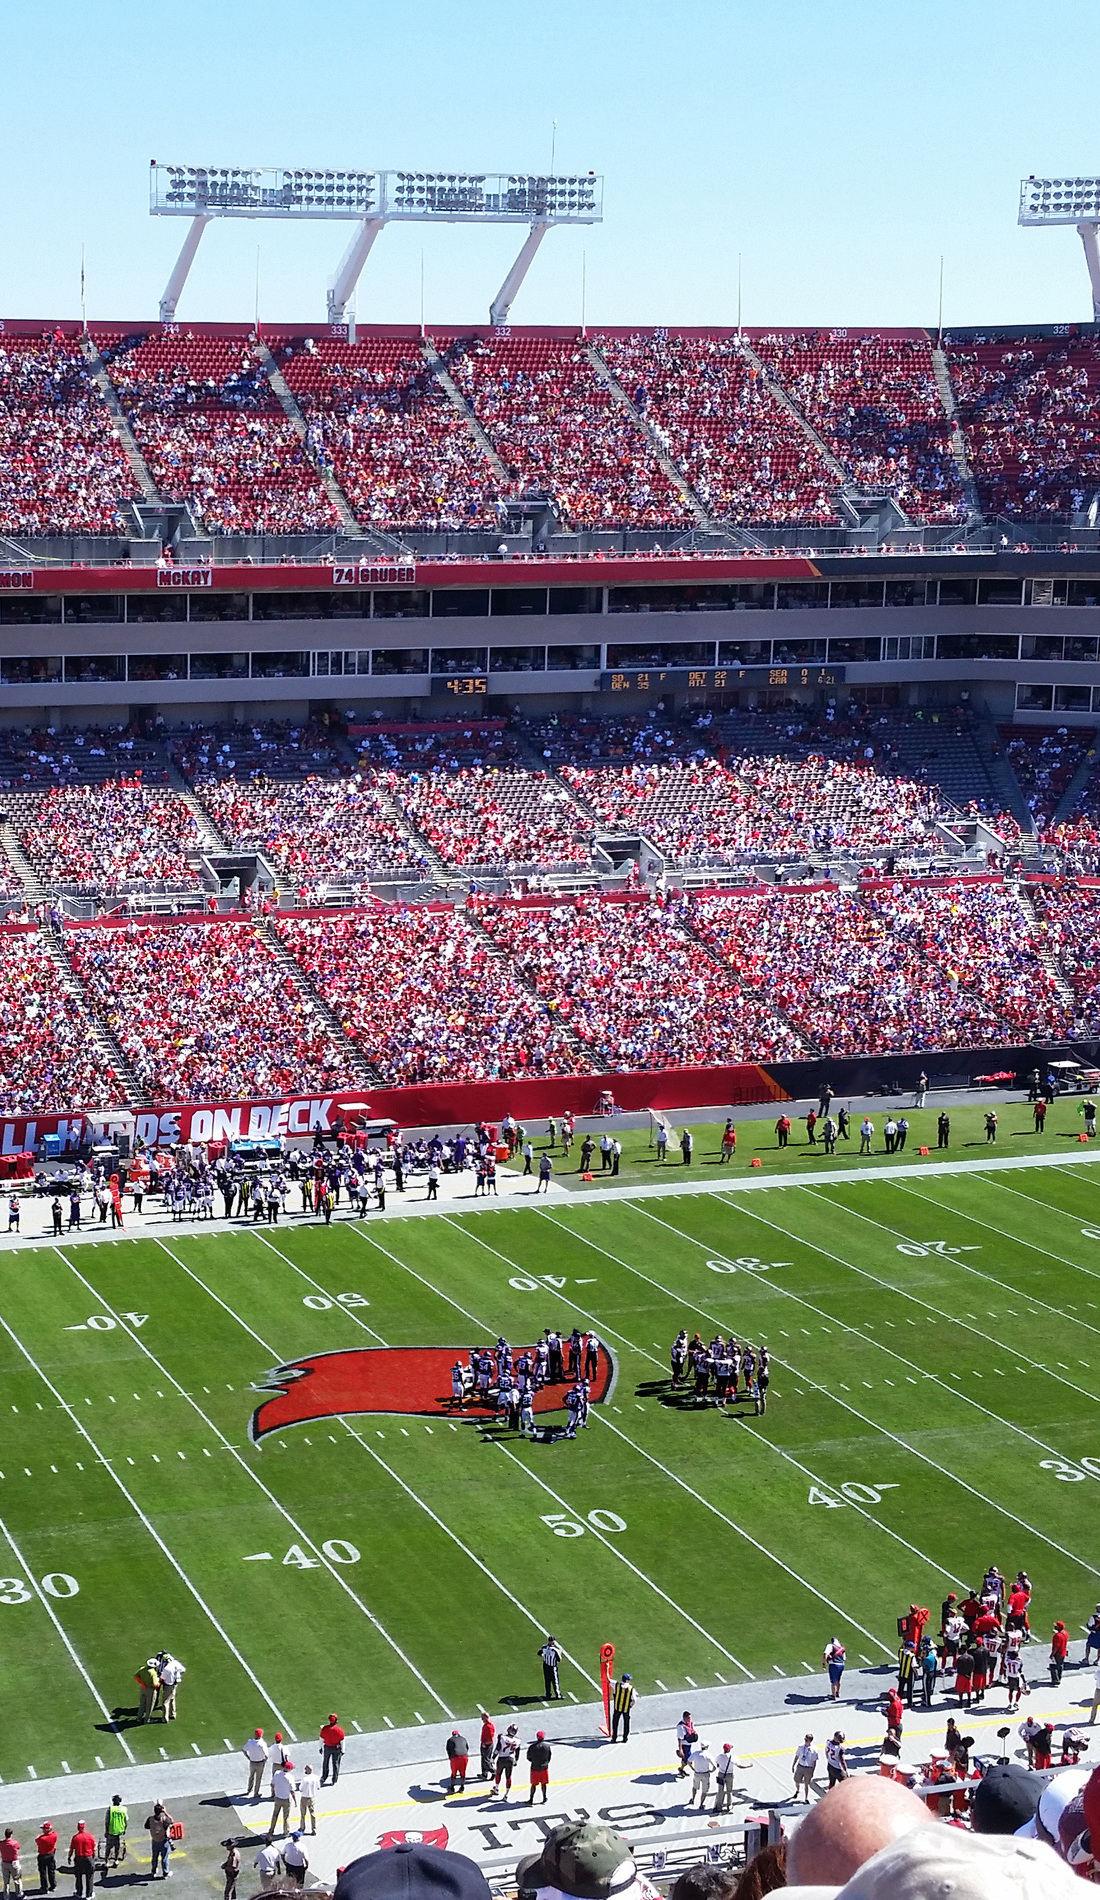 A Tampa Bay Buccaneers live event